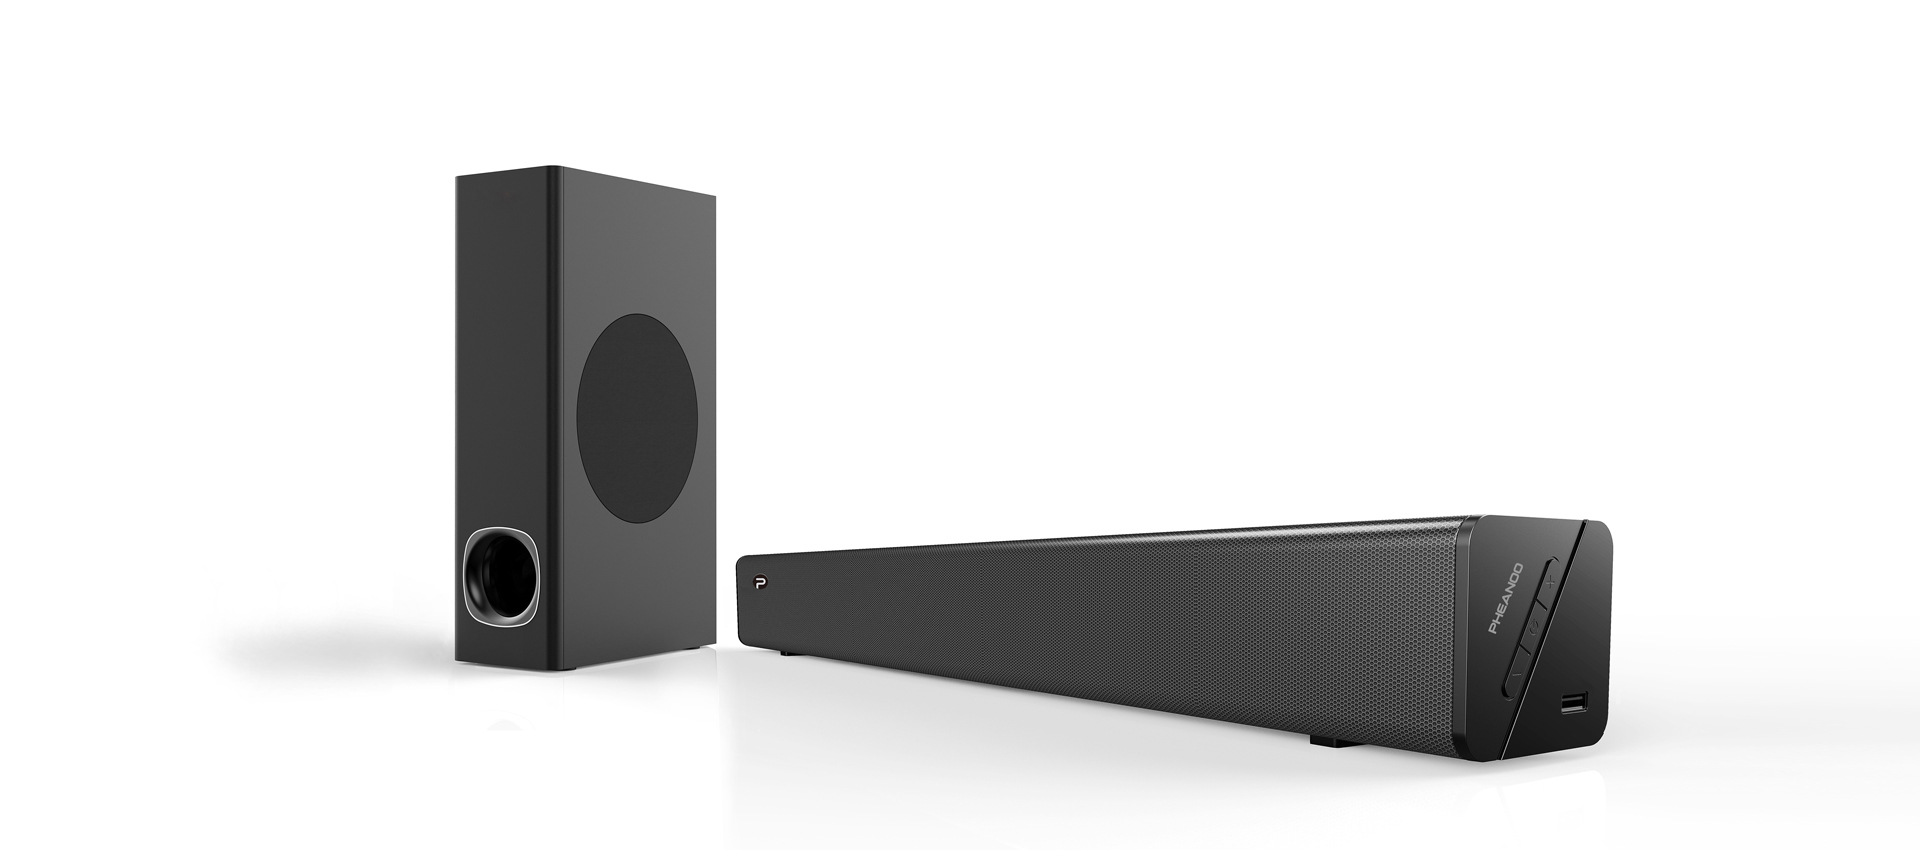 Pheanoo Audio Ltd Presents Premium Sound Bar For Using In Music Concert or Home Entertainment System